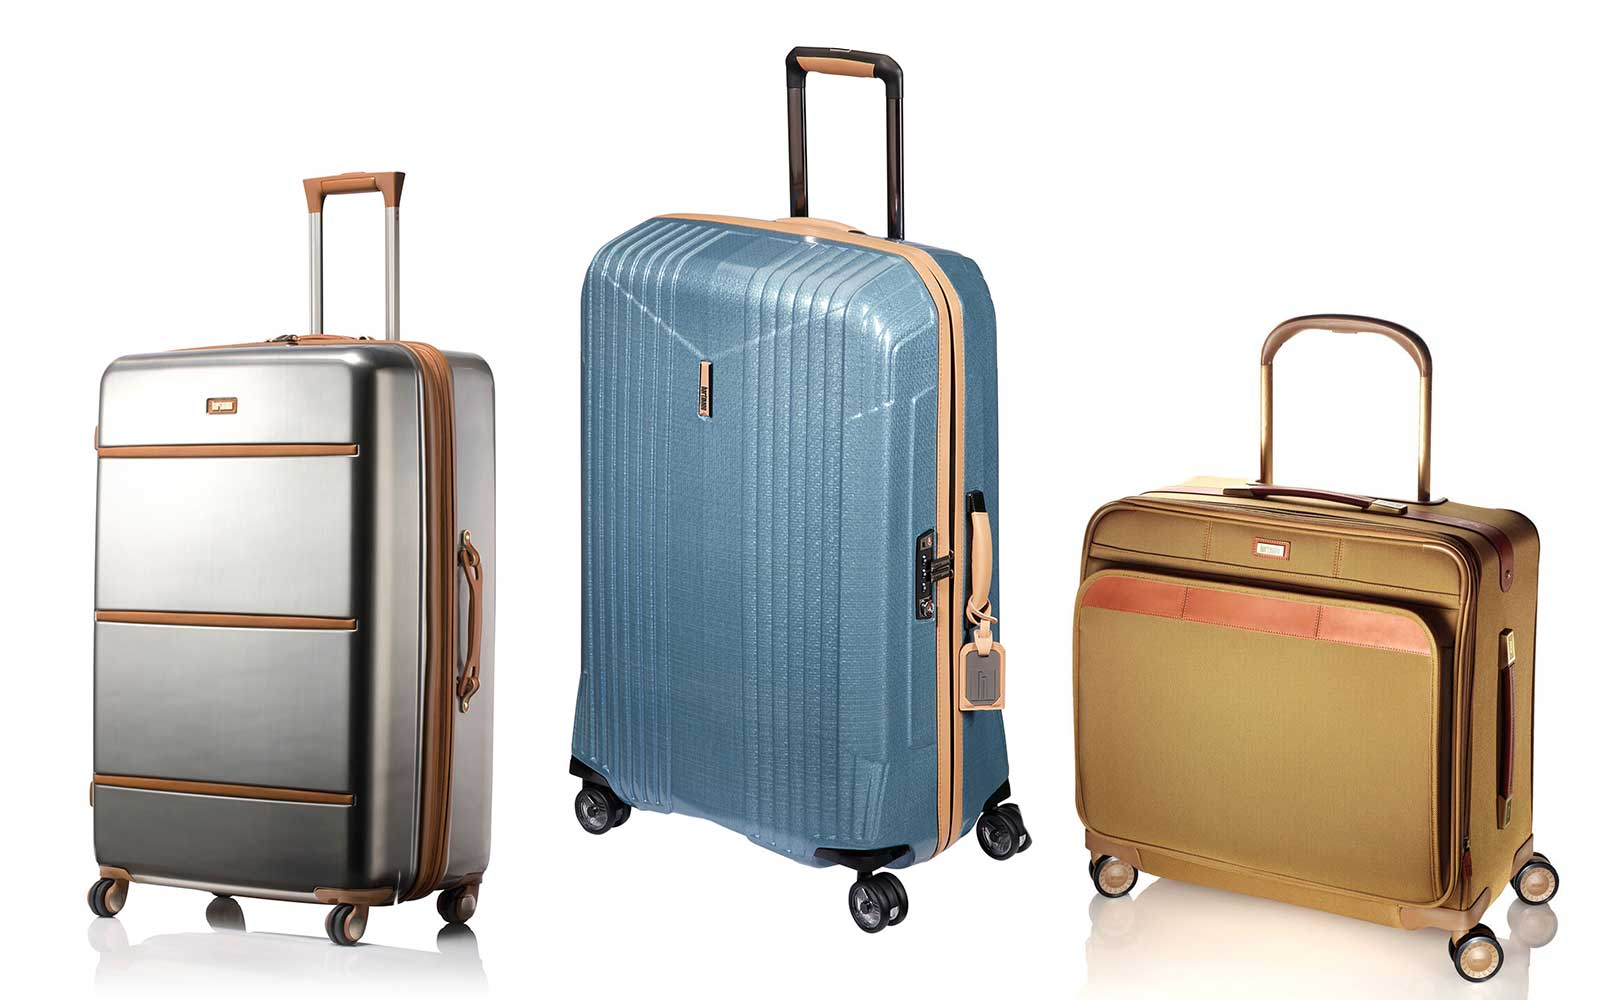 Hartmann Luggage and Suitcases